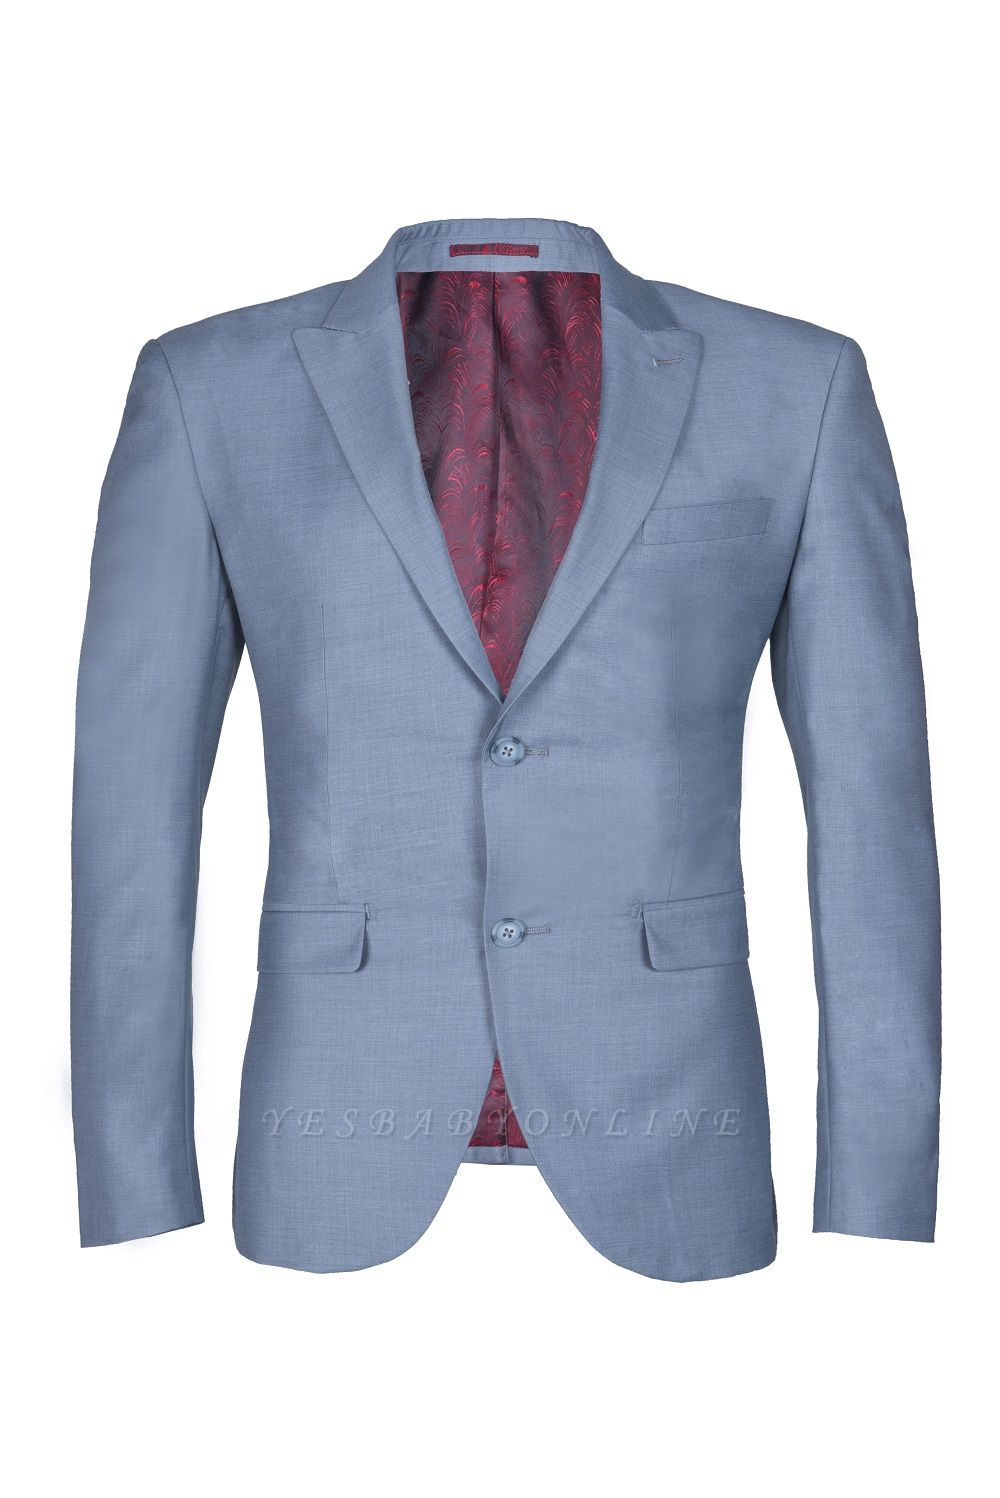 High Quality Sky Blue Two Button Single Breasted Slim Fit Wedding Suit